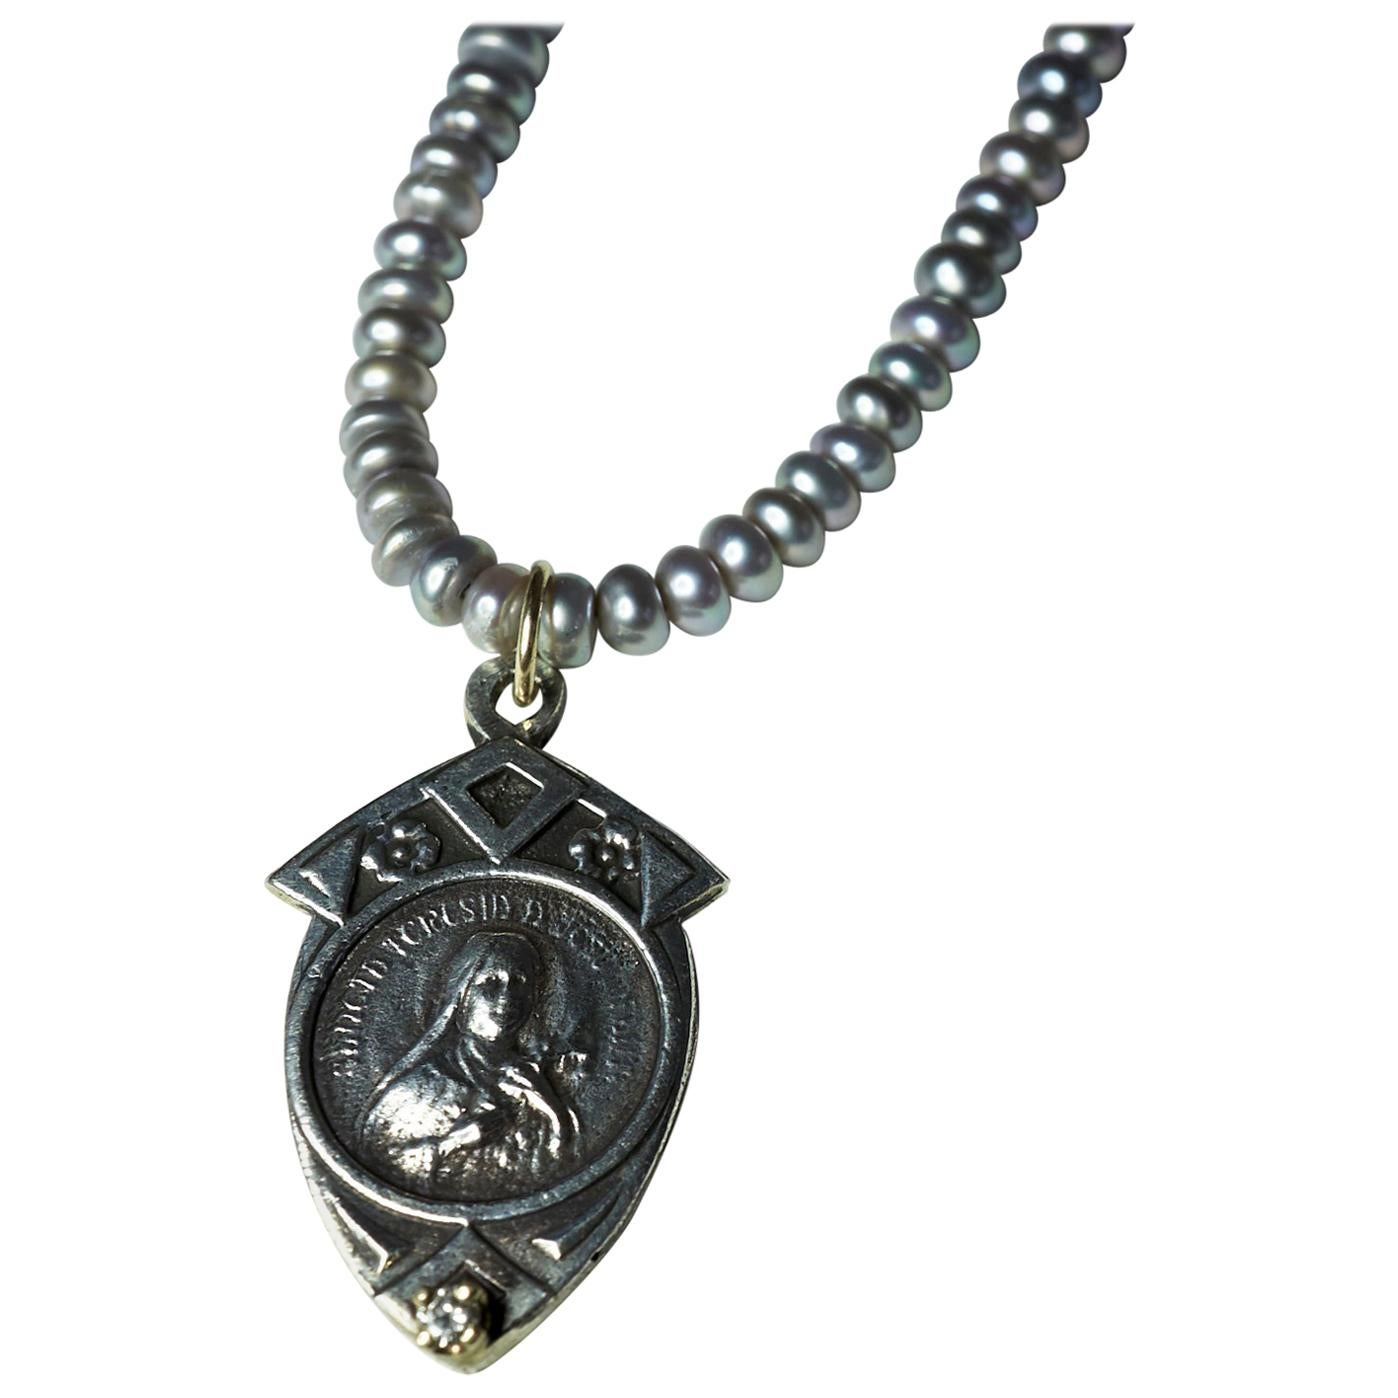 White Diamond Pearl Virgin Mary Mother Mary Medal Pendant Necklace J Dauphin